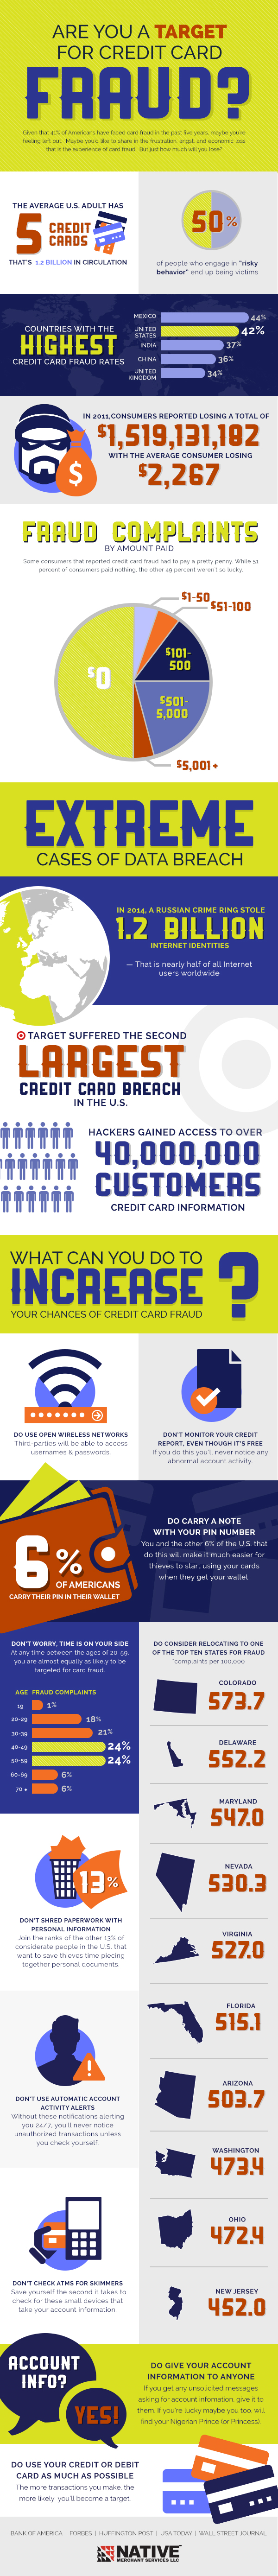 Credit Card Fraud Infographic